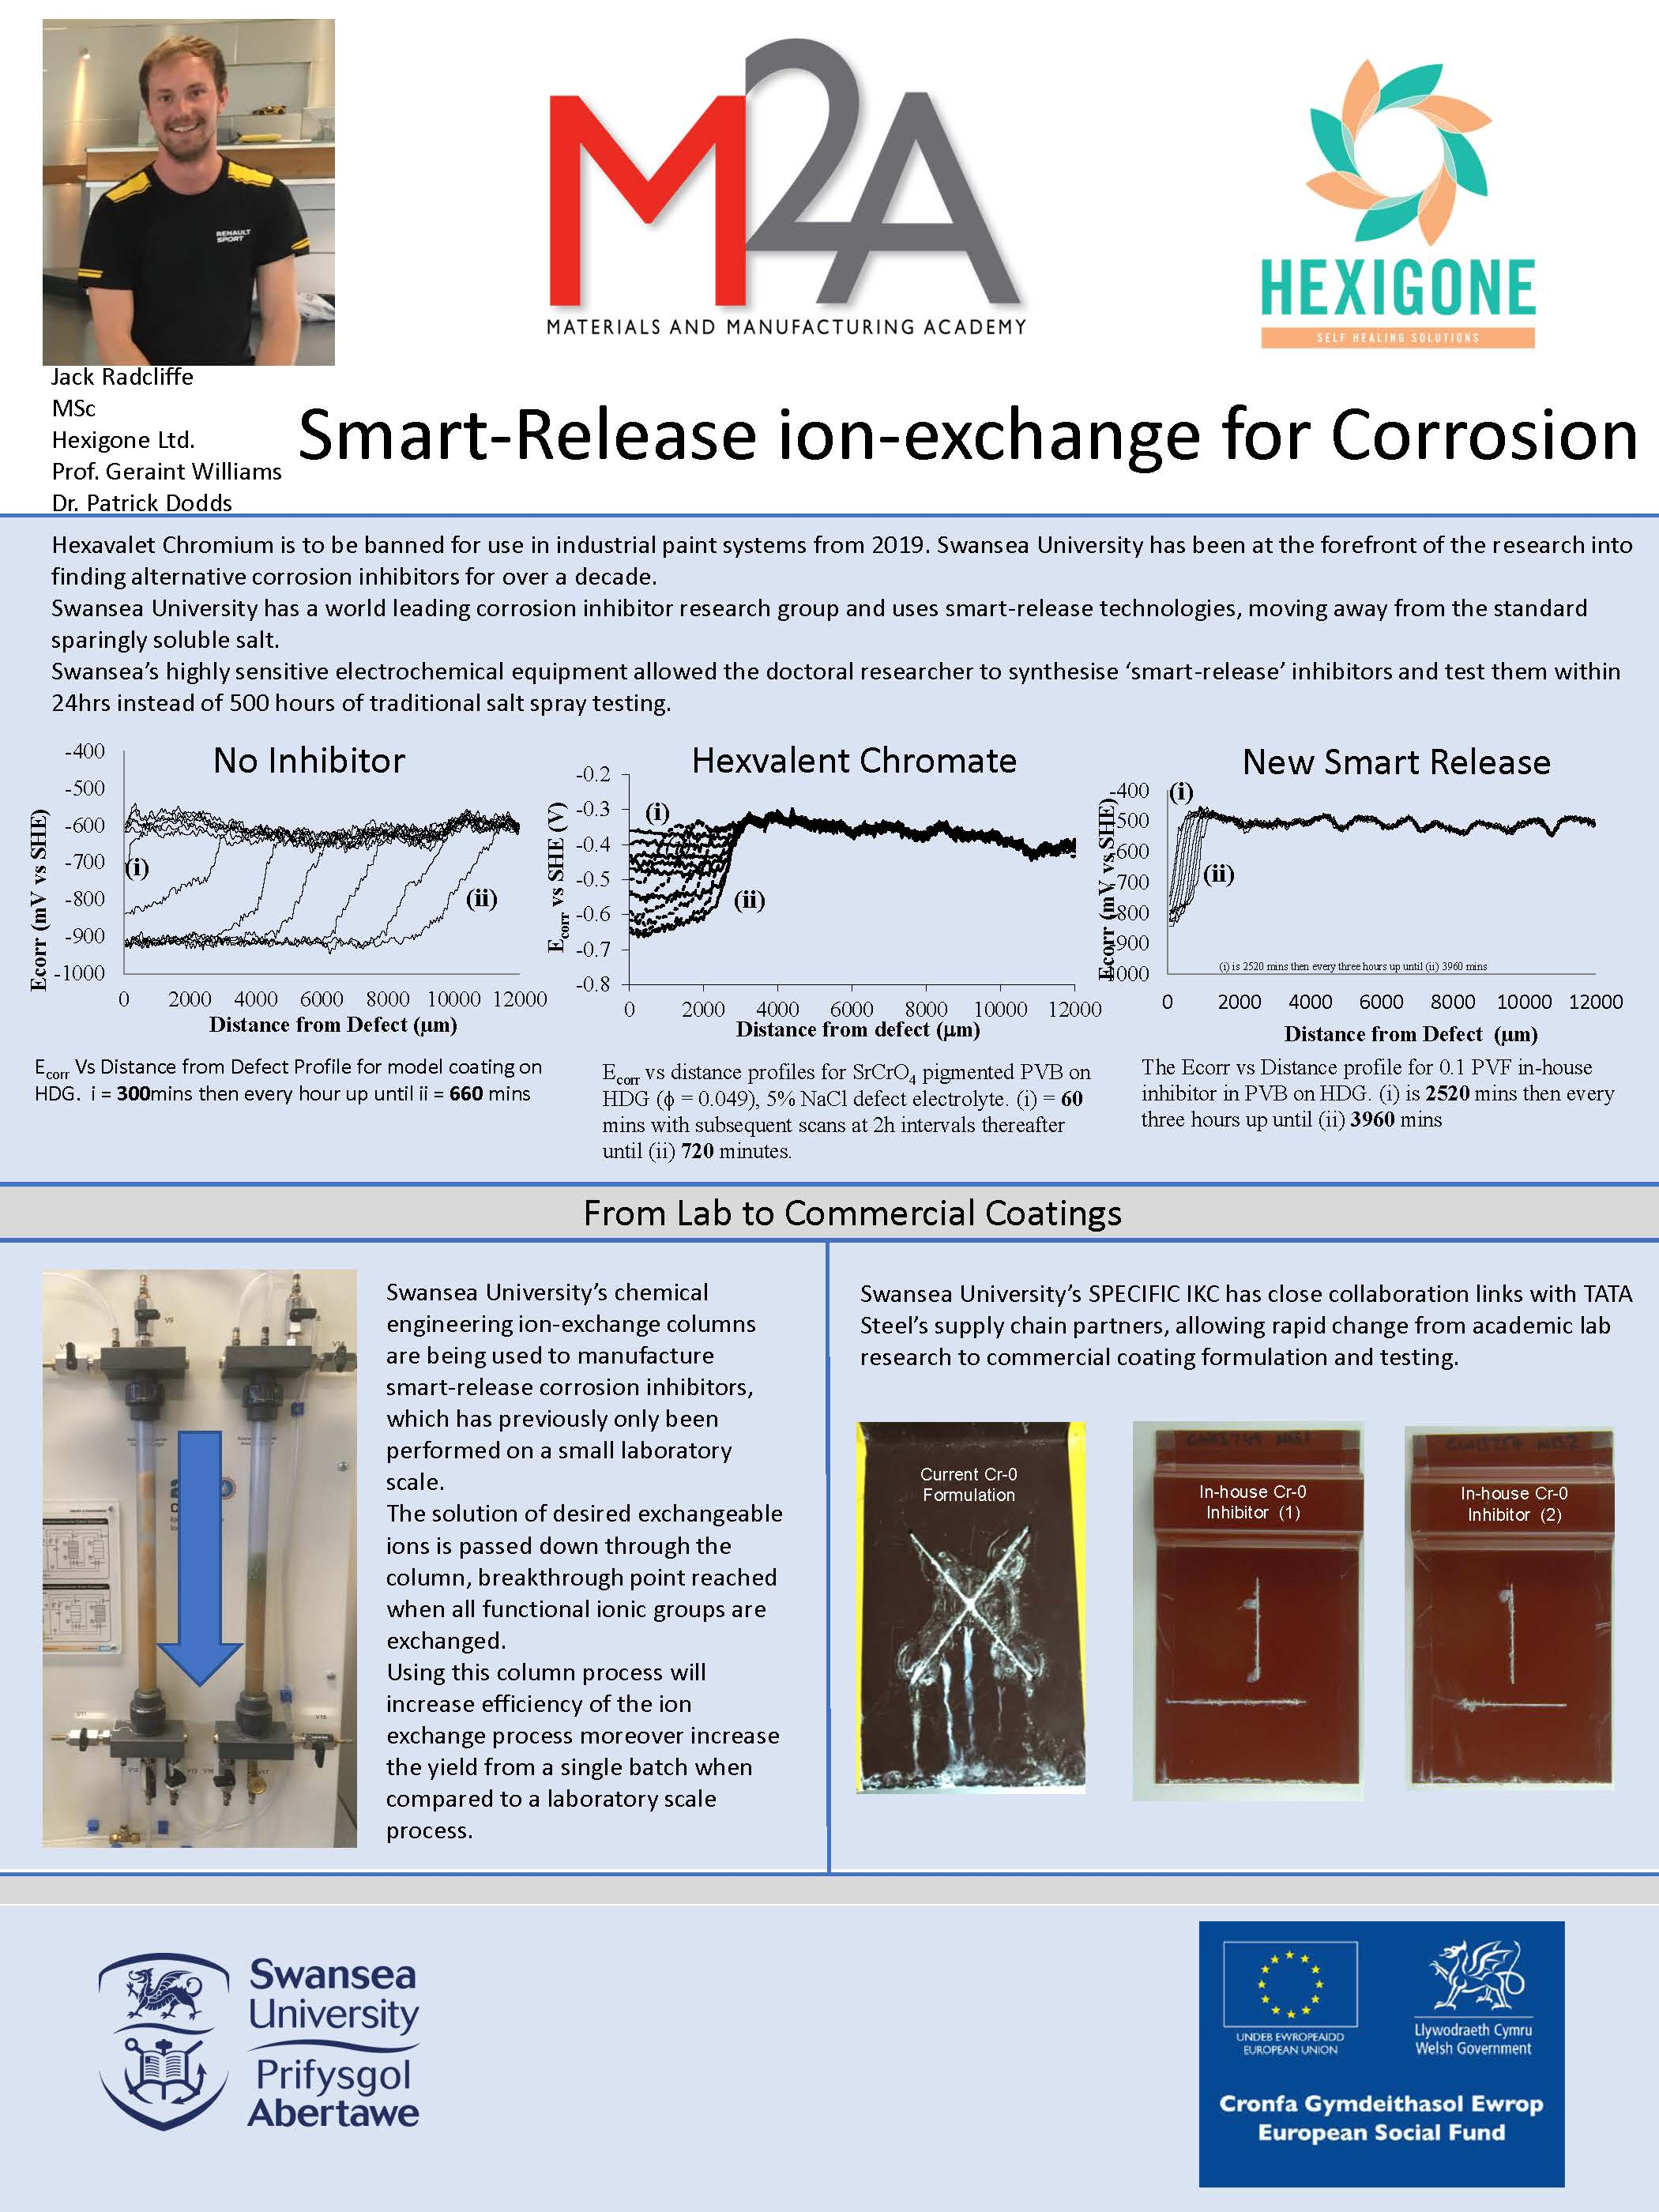 Smart-Release ion-exchange for Corrosion